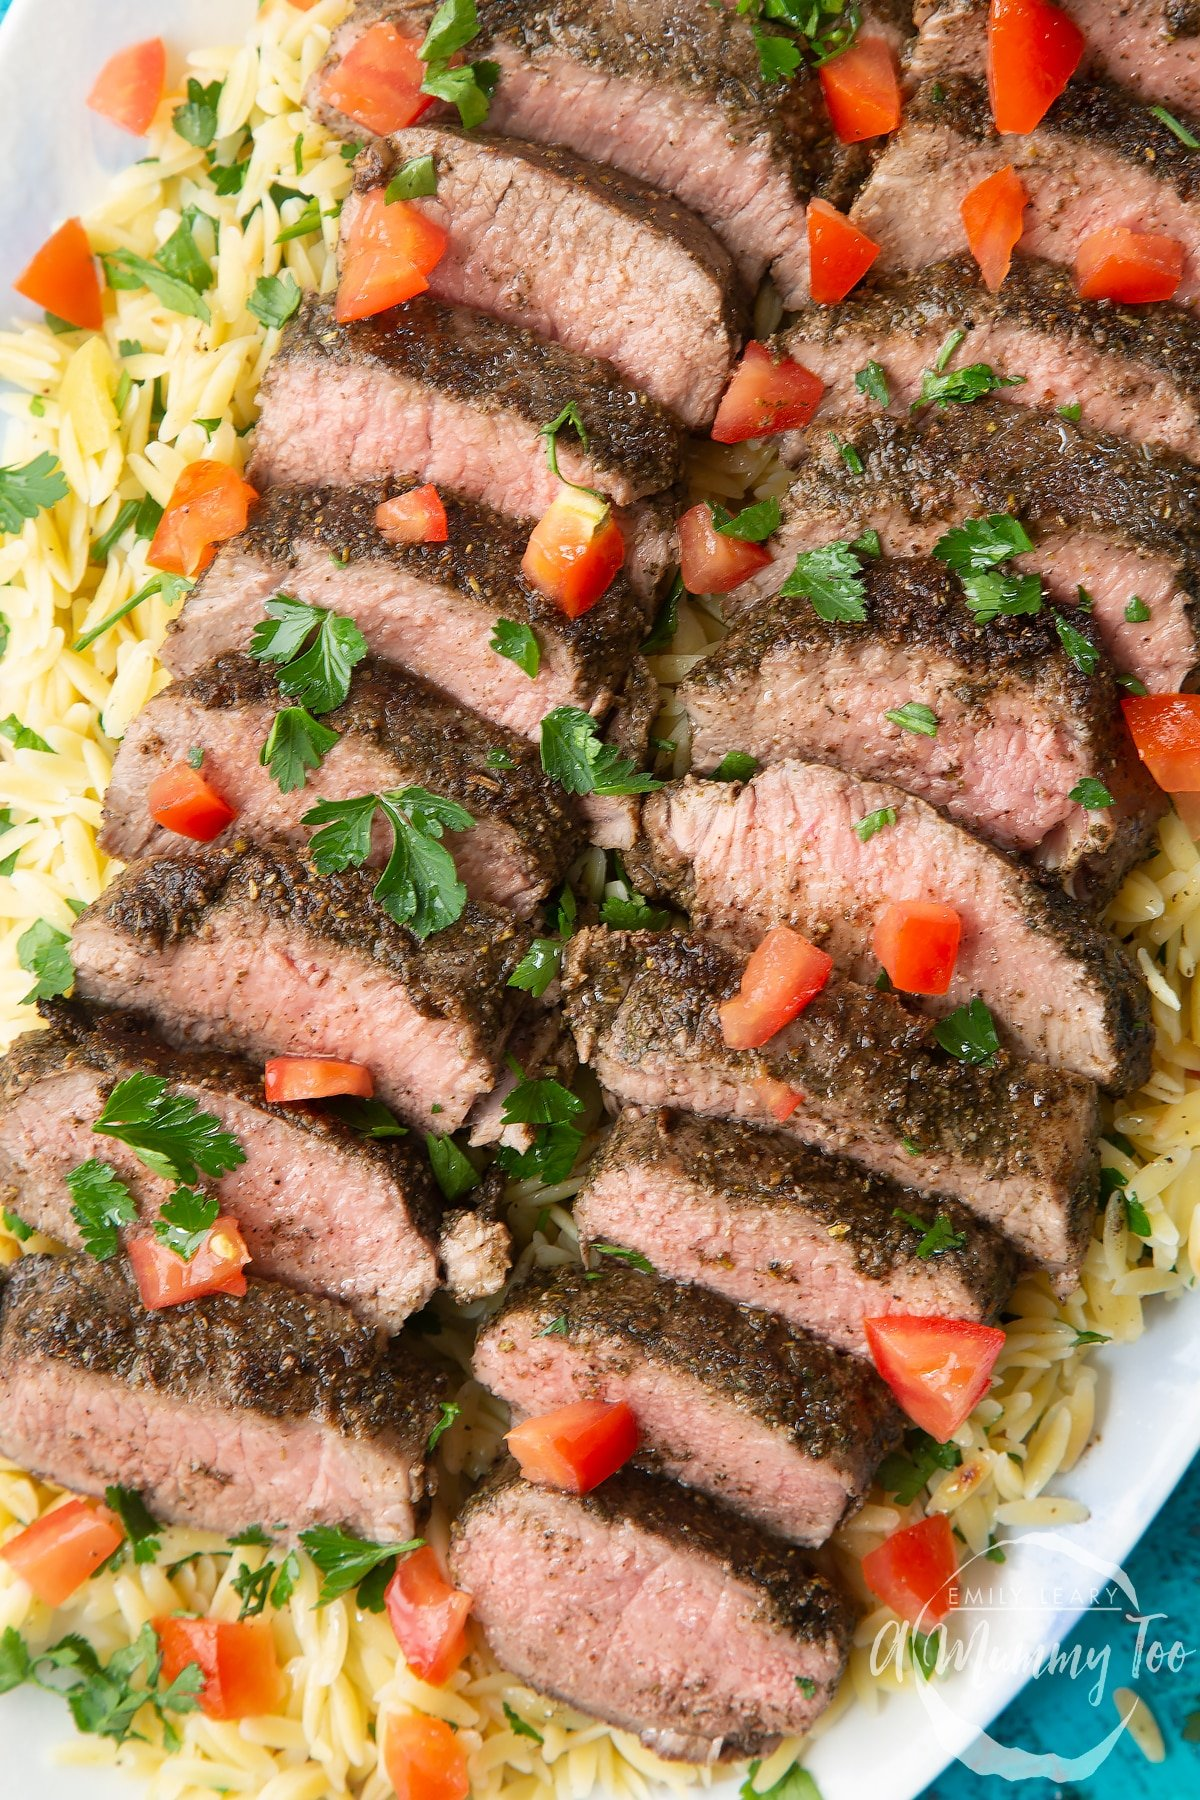 Close up of slices of herby lamb arranged on a bed of orzo on an oval platter. The dish has been scattered with parsley and chopped tomatoes.